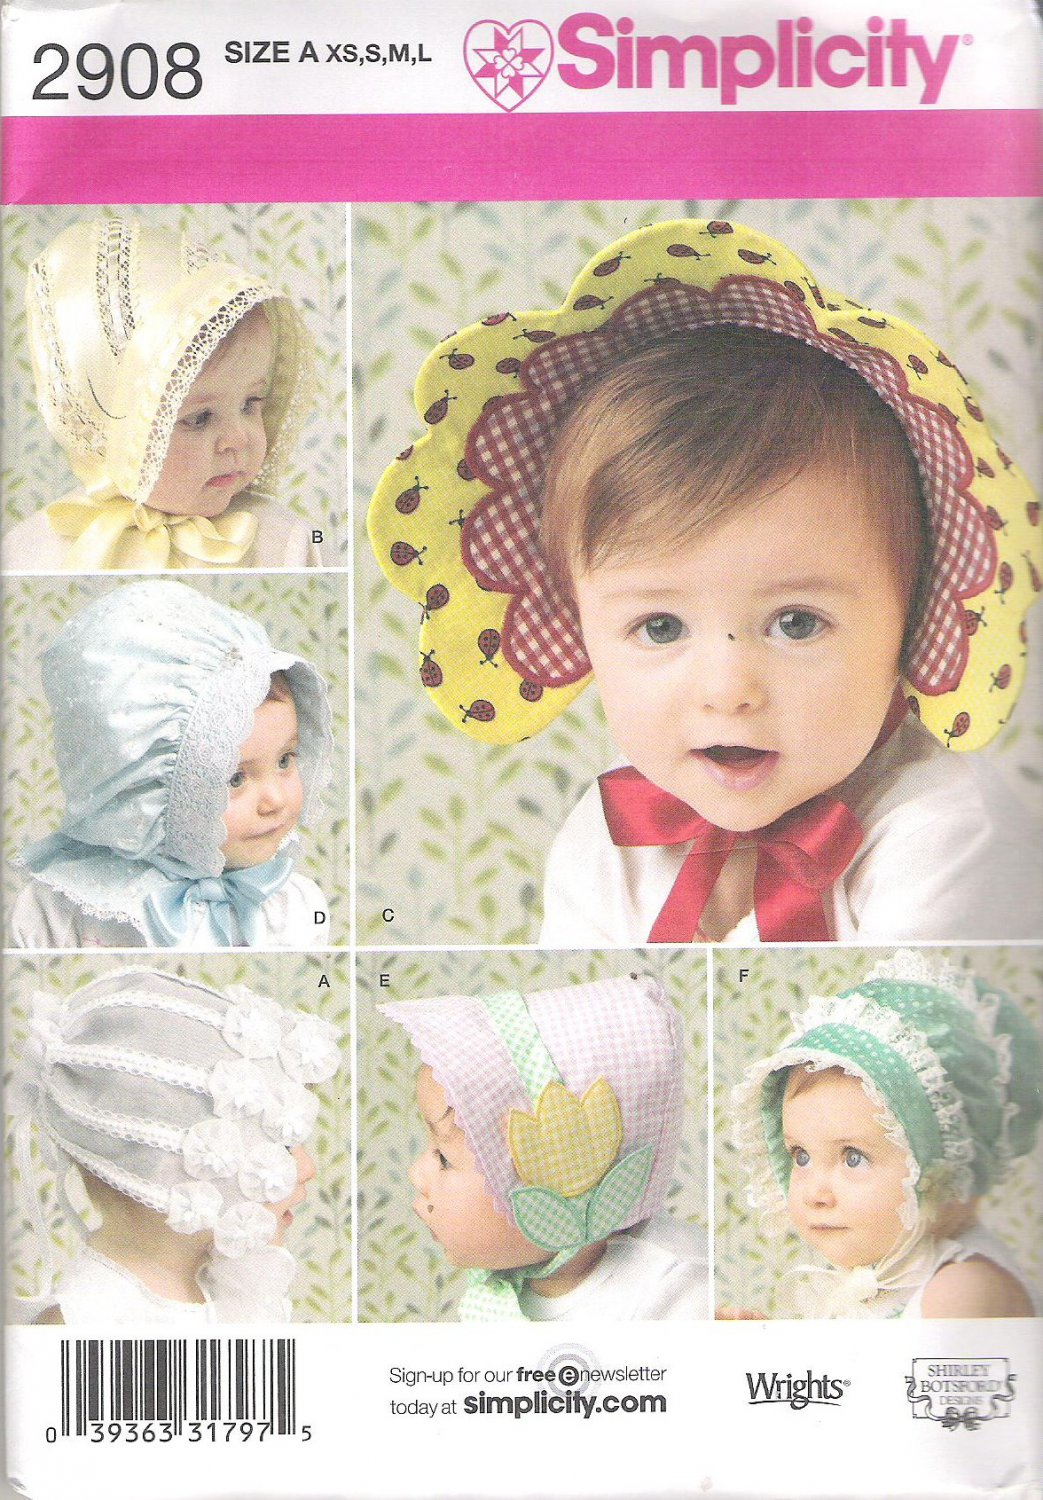 2008 Simplicity 2908 Pattern Babies Infants and Toddlers Hats 6 Styles XS-L Uncut